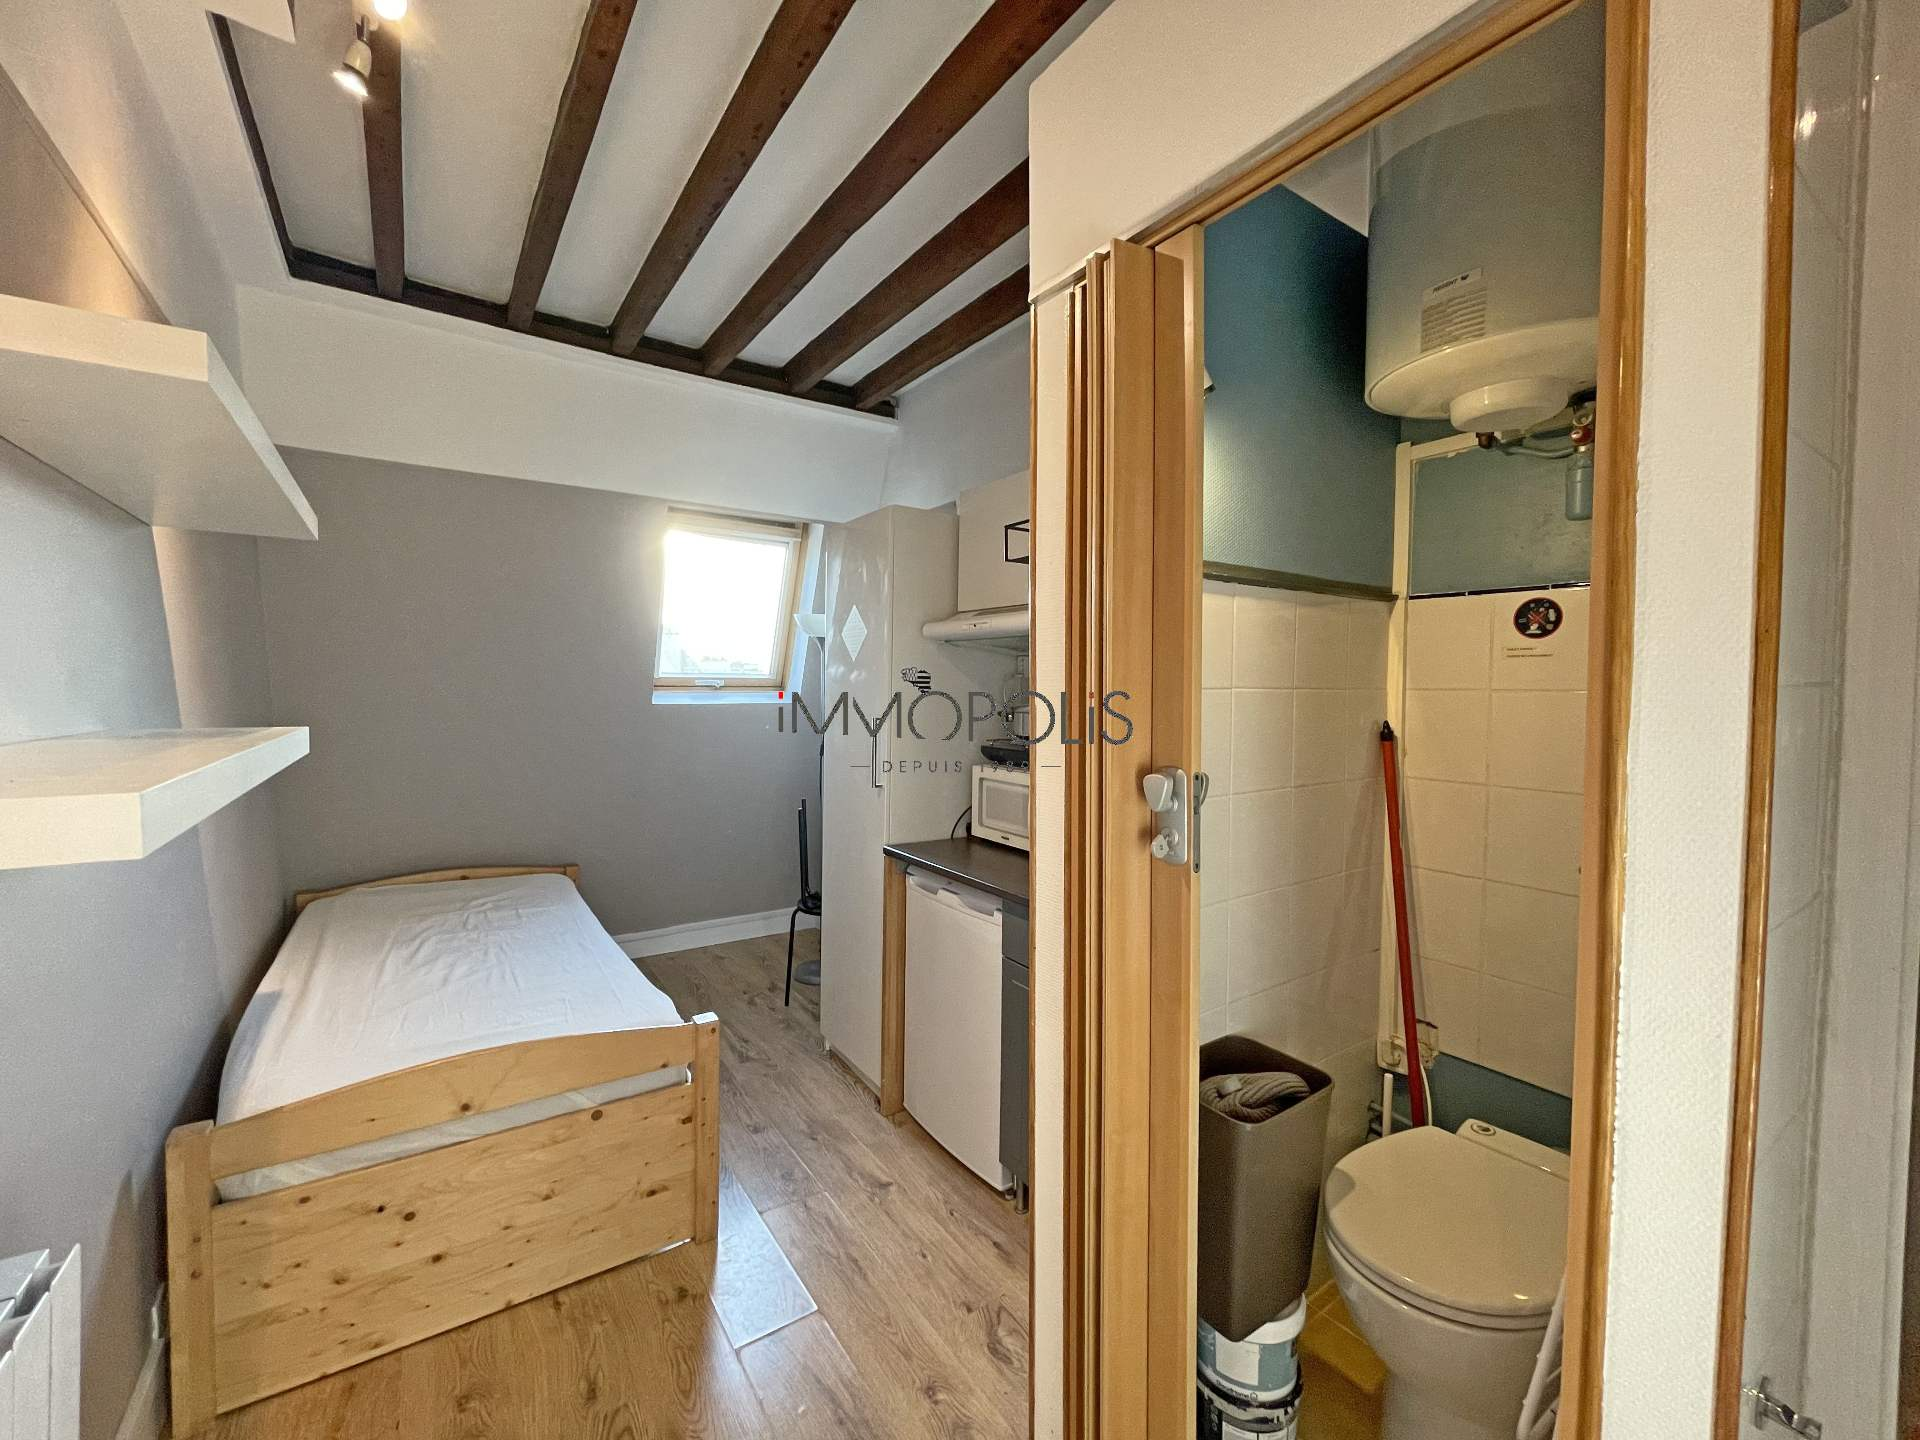 Europe district (rue Clapeyron in the 8th arrondissement), Legally laudable studio of 9.88 m² Law Carrez located in a beautiful well maintained building 6